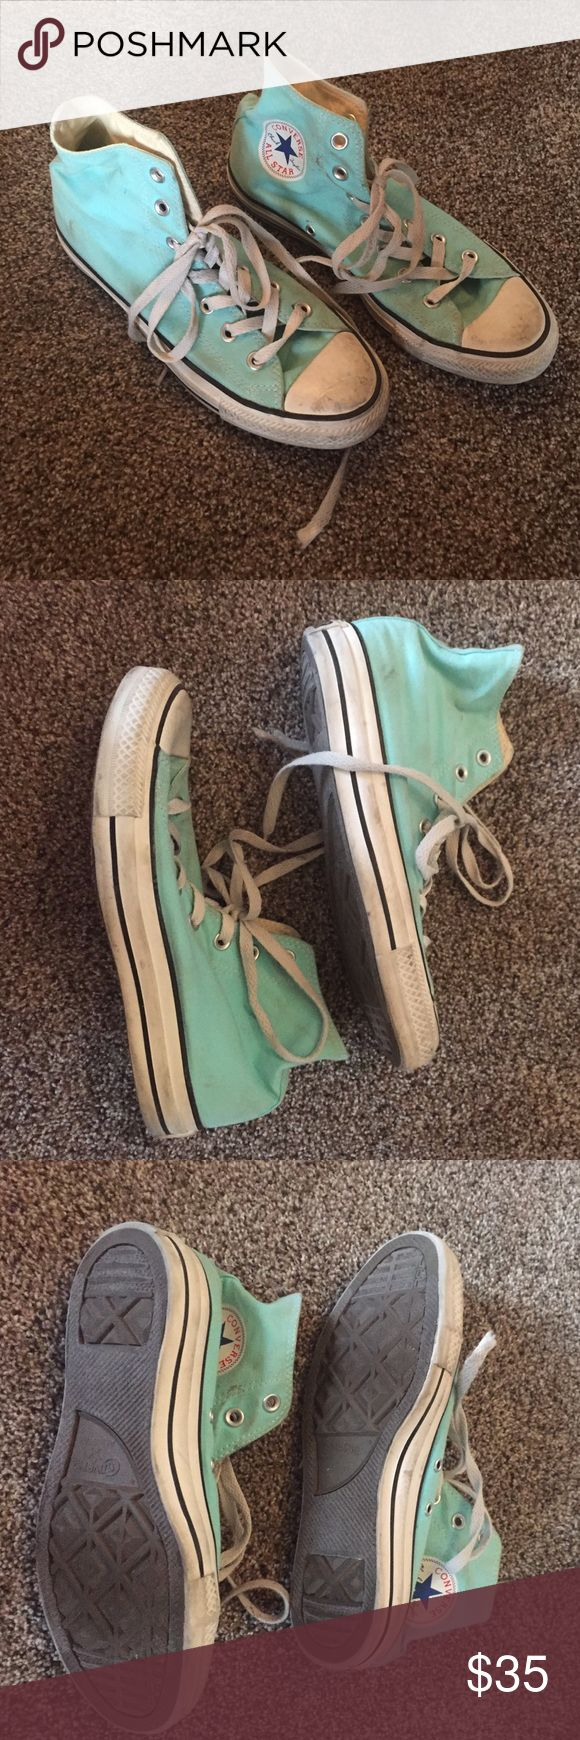 Turquoise converse high tops size 6 Great condition super cute fit more like a 7.5-8.5 super cute! Converse Shoes Sneakers